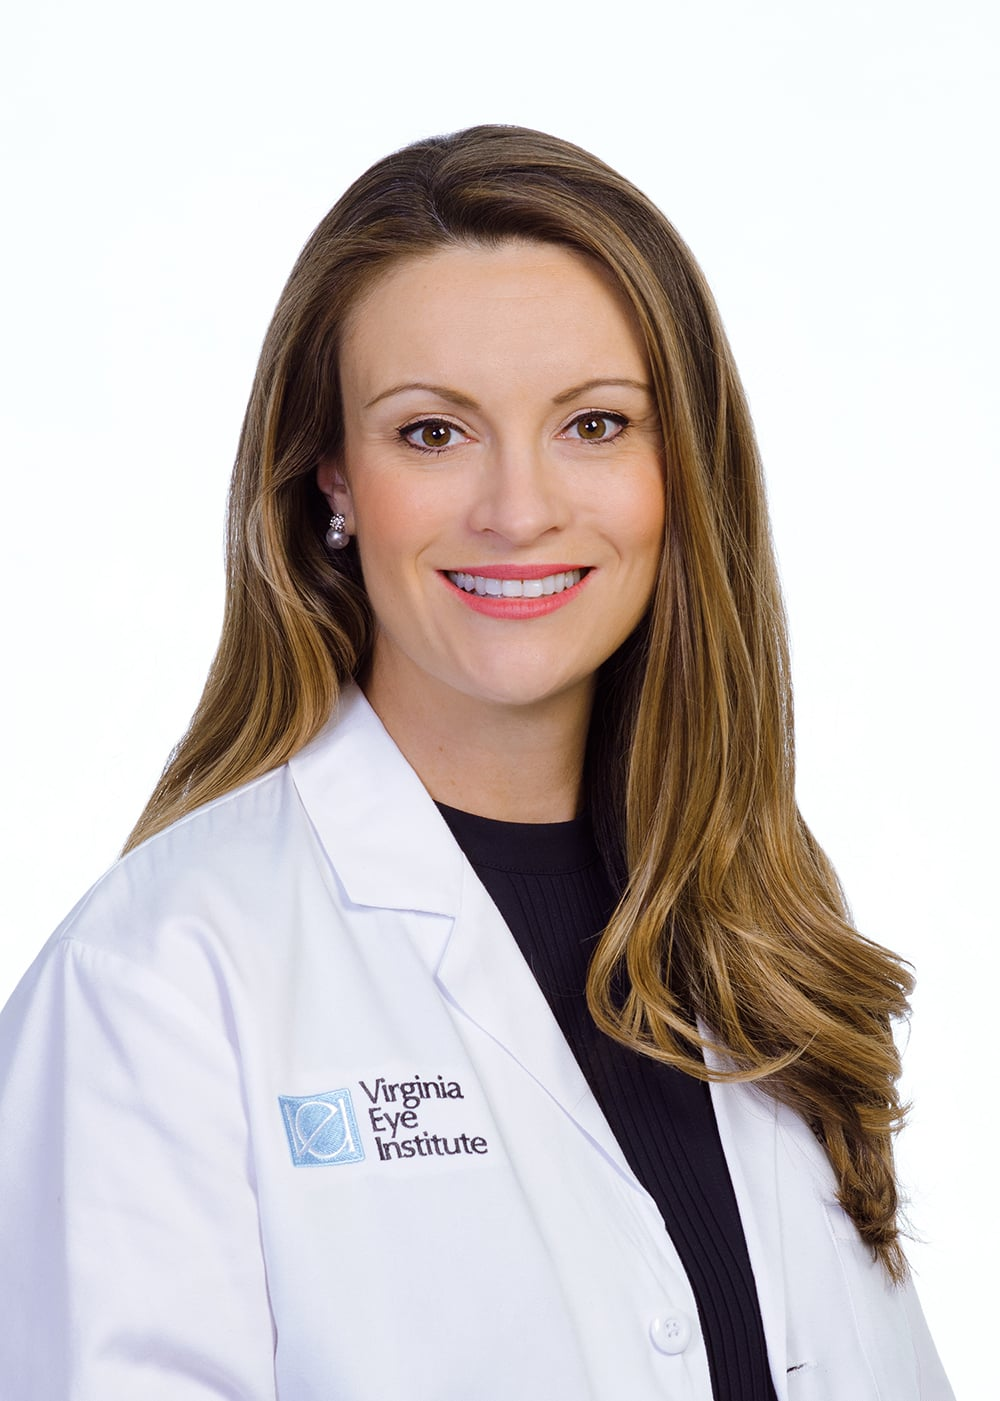 Dr. Nicole Langelier; a caucasian lady in doctors scrubs smiling at the camera in a headshot for virginia eye institute.